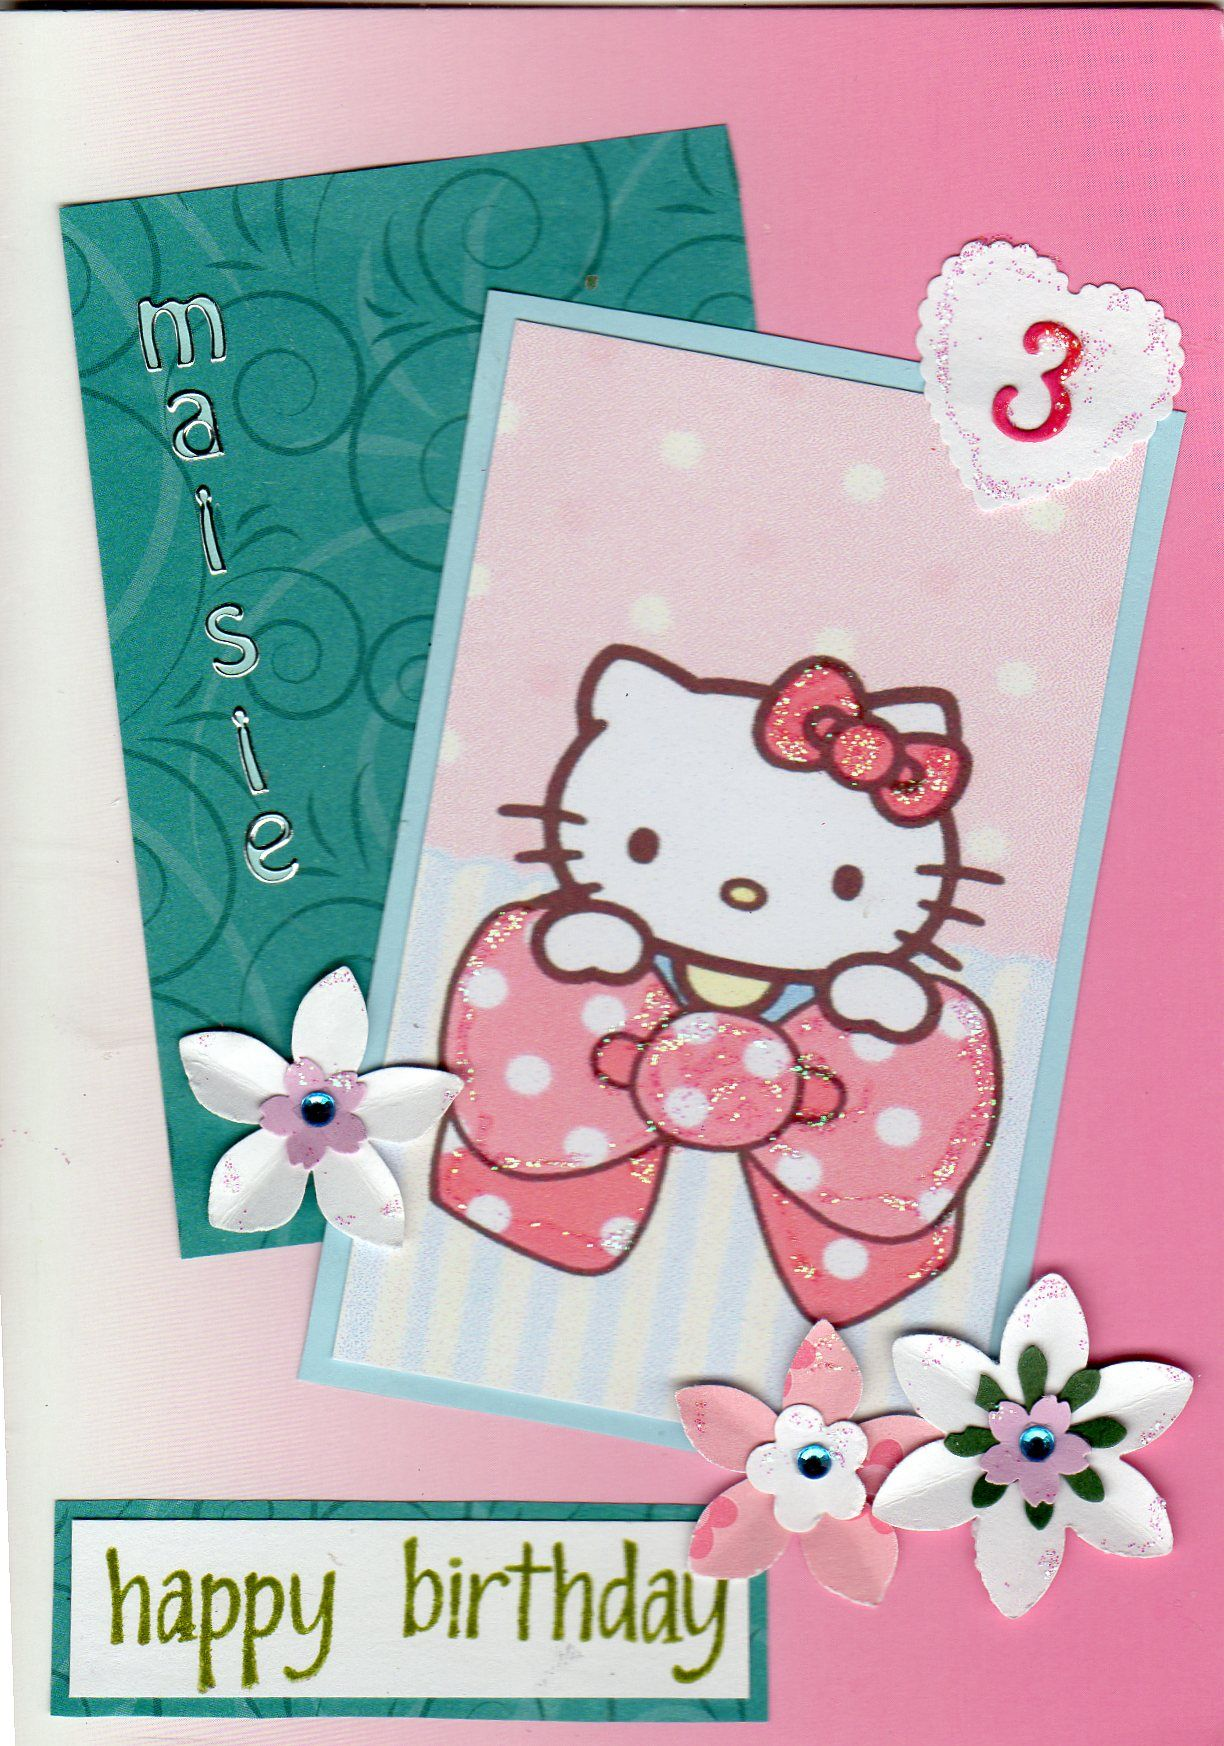 Hello Kitty with a little glitter and a few flowers